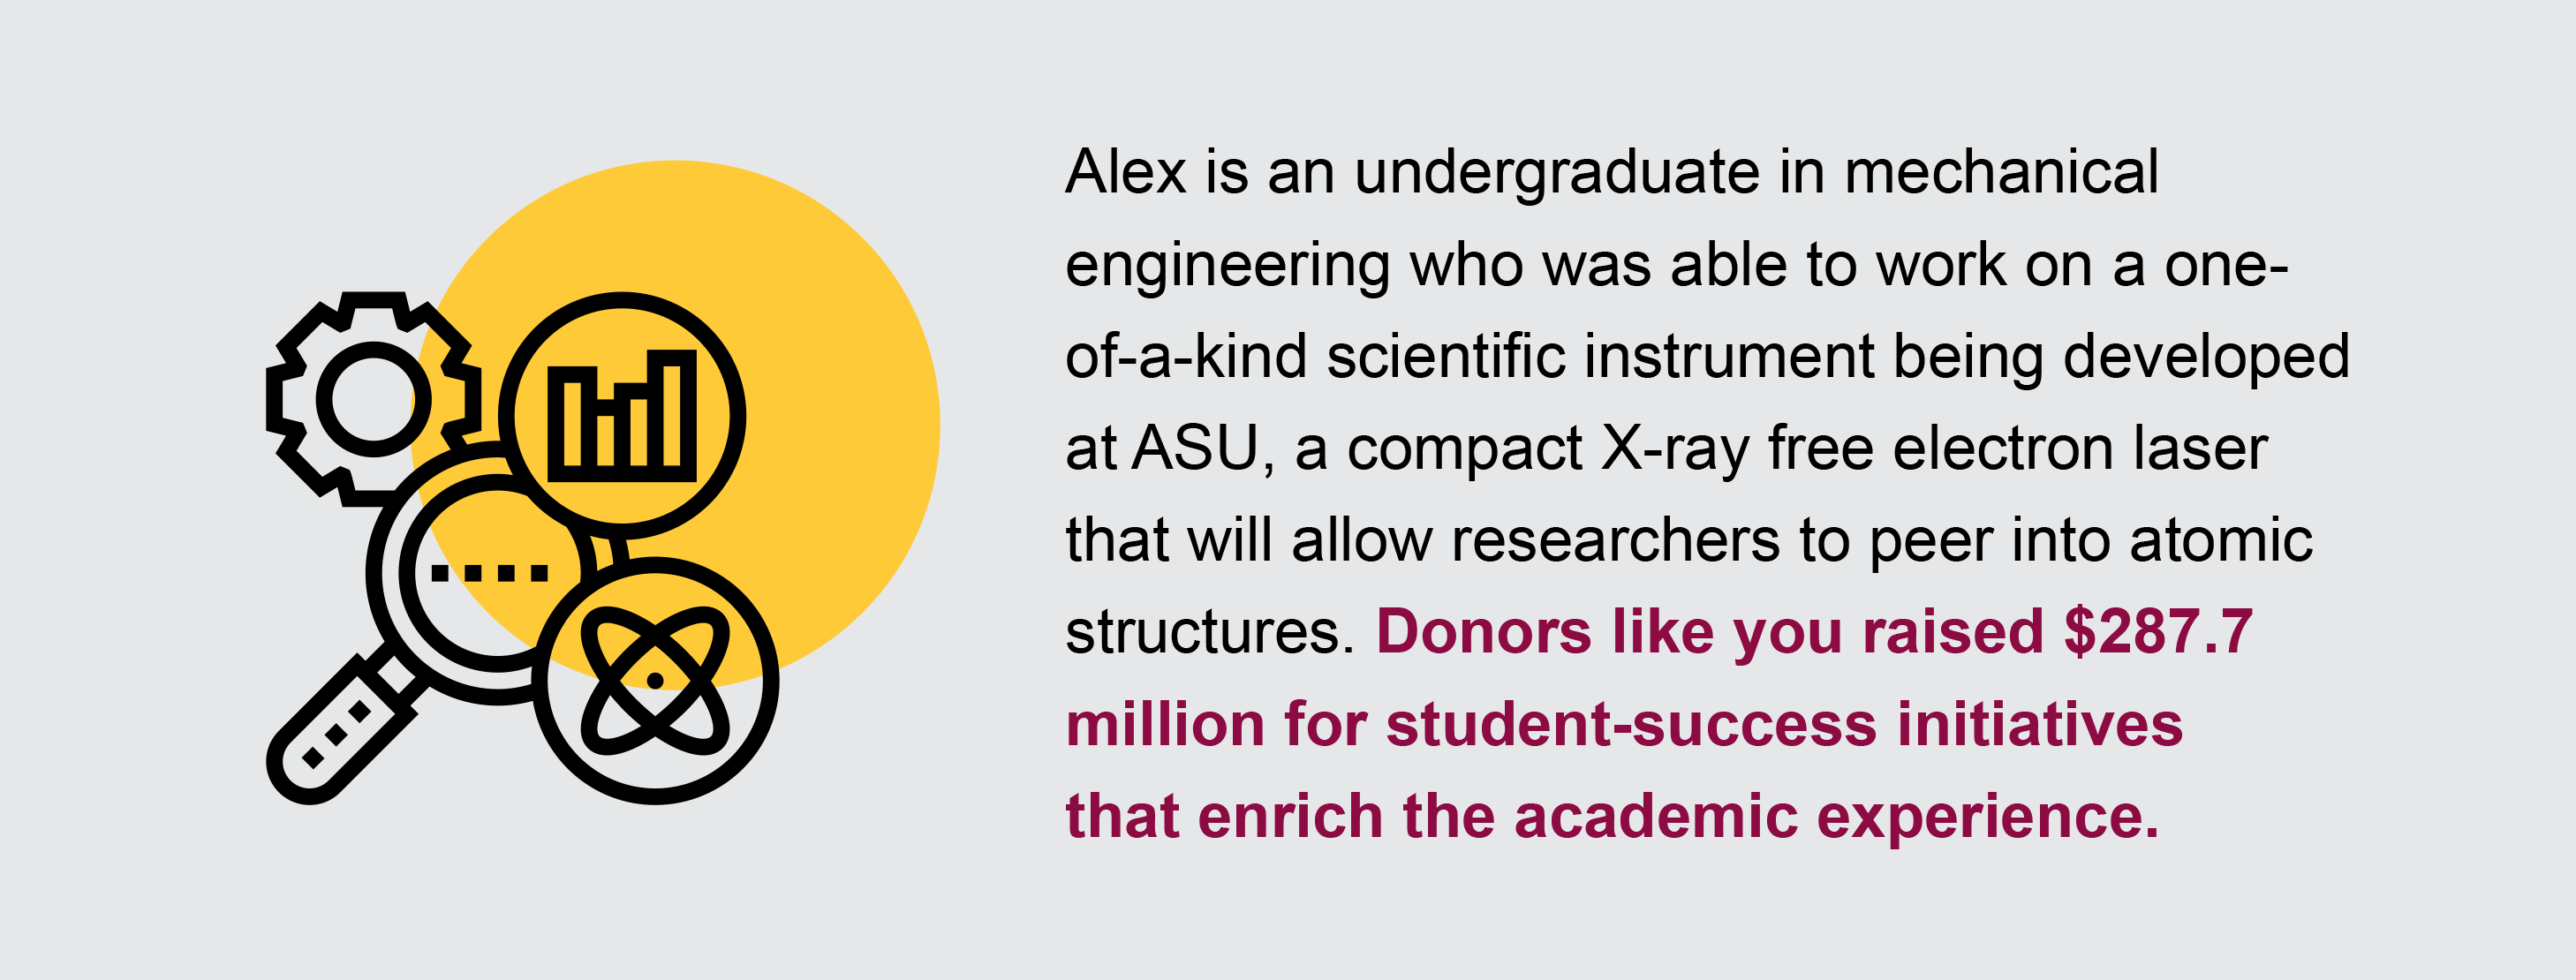 Alex is an undergraduate in mechanical engineering who was able to work on a one- of-a-kind scientific instrument being developed at ASU, a compact X-ray free electron laser that will allow researchers to peer into atomic structures. Donors like you raised $287.7 million for student-success initiatives that enrich the academic experience.